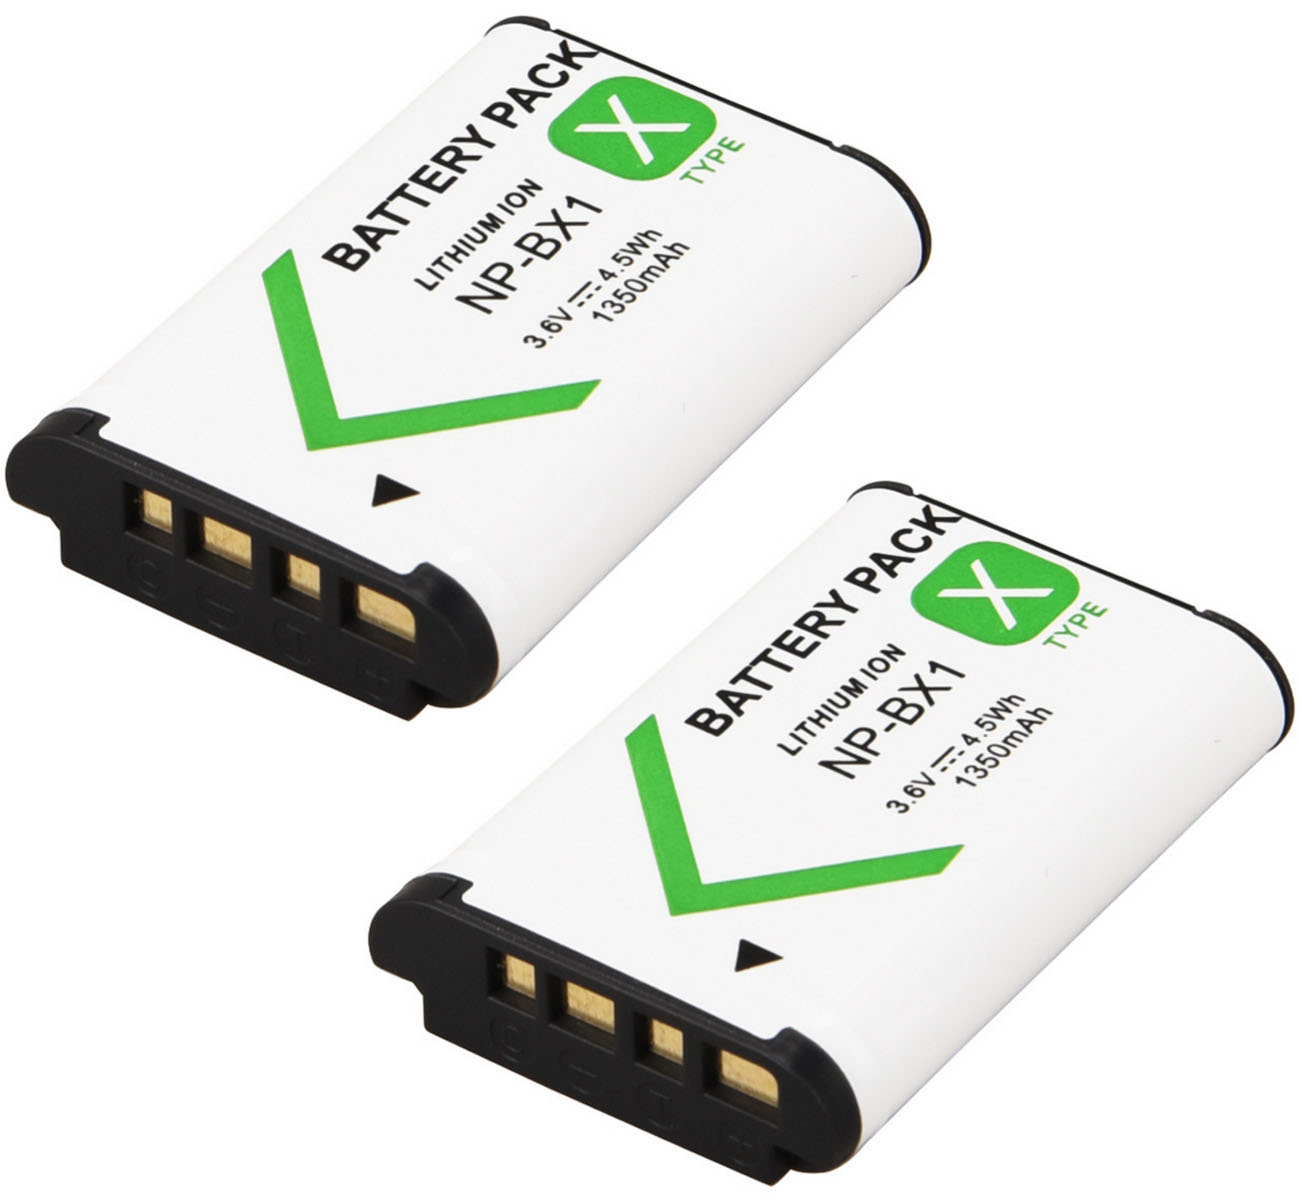 Battery Pack for <font><b>Sony</b></font> <font><b>HDR</b></font>-AS30V, <font><b>HDR</b></font>-AS50R, <font><b>HDR</b></font>-AS100VR, <font><b>HDR</b></font>-AS200VR, <font><b>HDR</b></font>-<font><b>AS300R</b></font>, FDR-X1000VR, FDR-X3000R POV Action Cam image